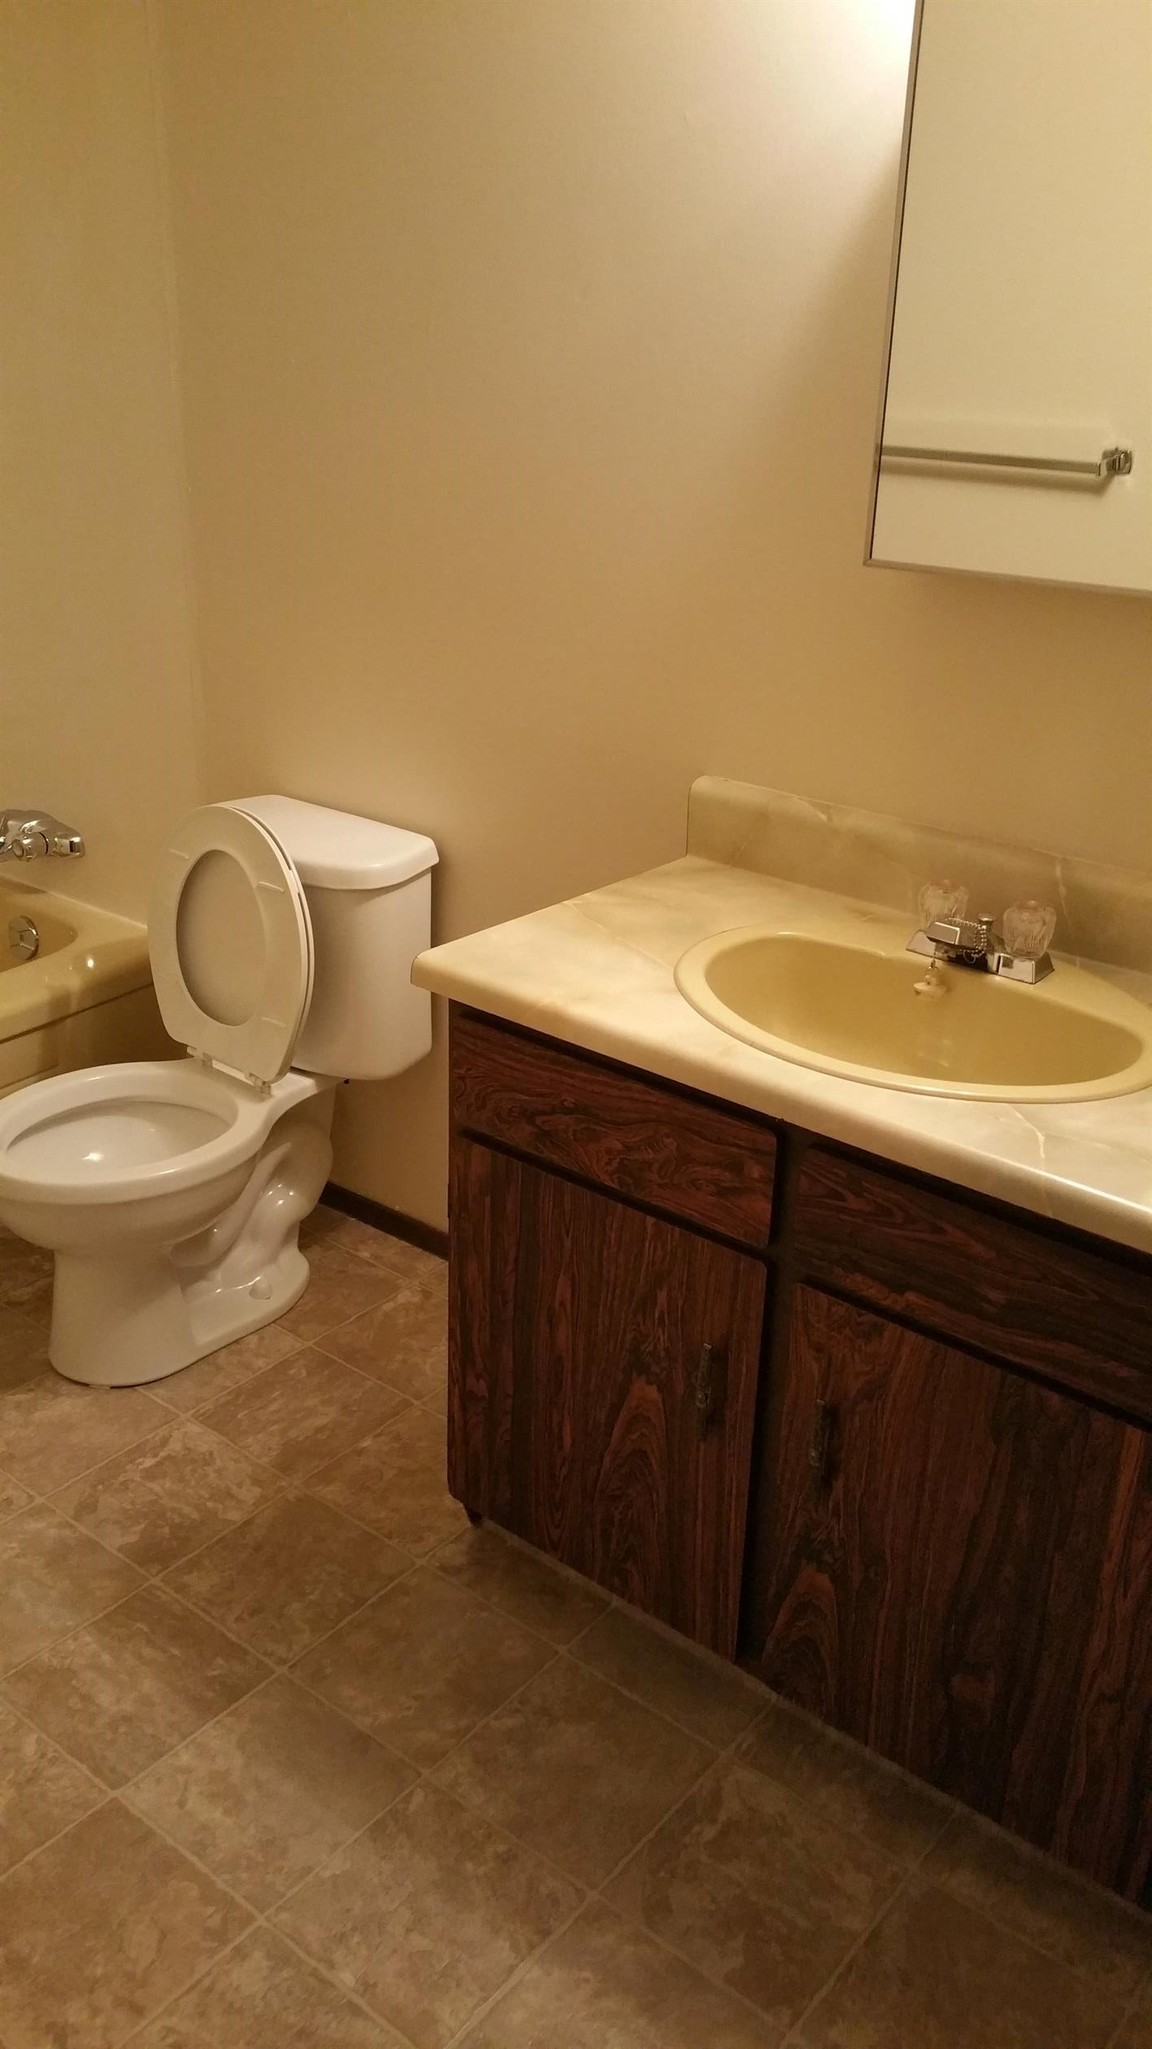 Bathroom Sinks Edmonton Alberta 12219 97 st nw, edmonton, ab t5g 1z2 - apartment rental | padmapper